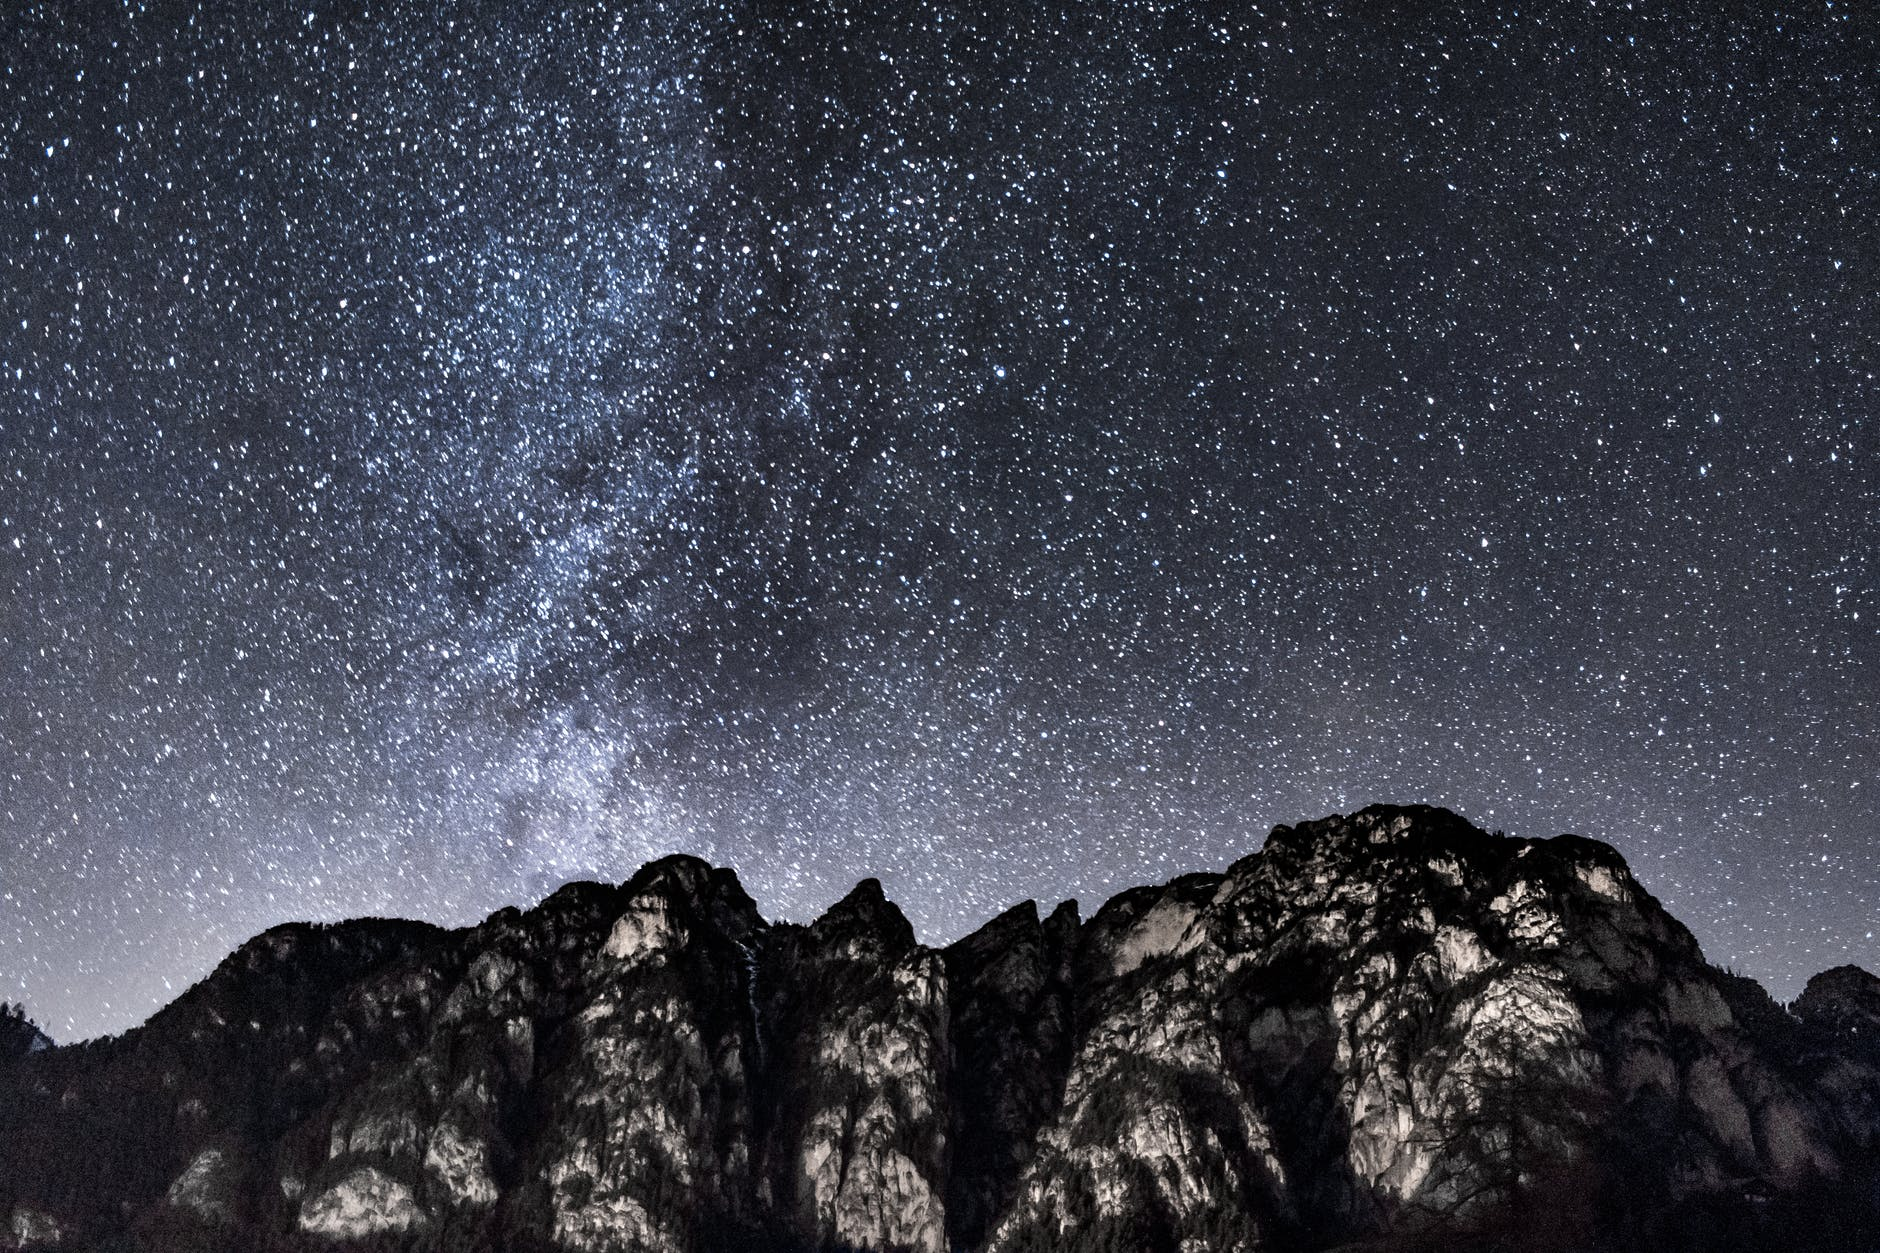 mountain under starry sky during nighttime